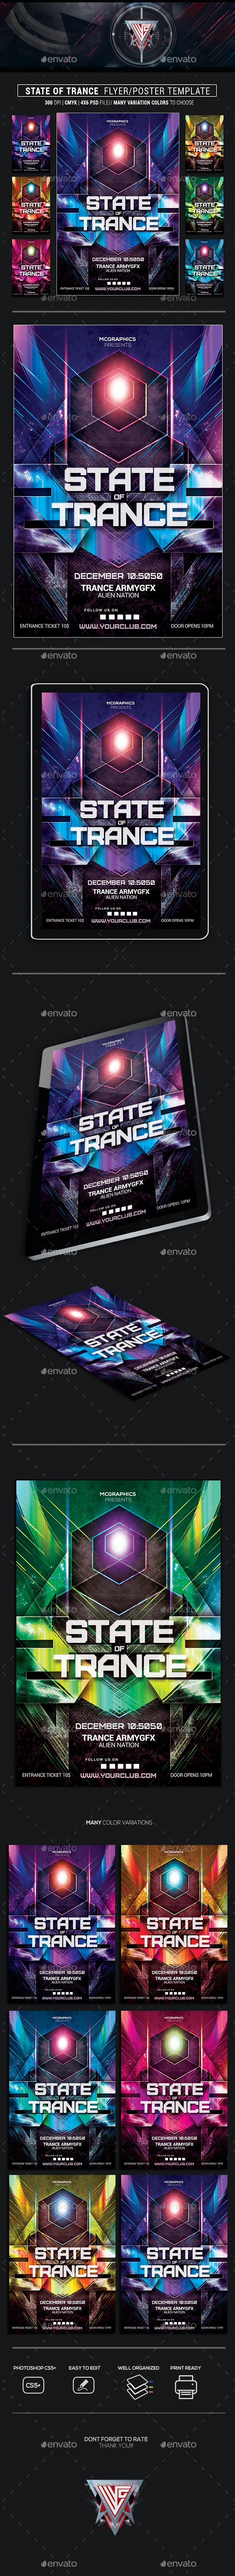 State of Trance Photoshop Flyer/Poster Template - Clubs & Parties Events